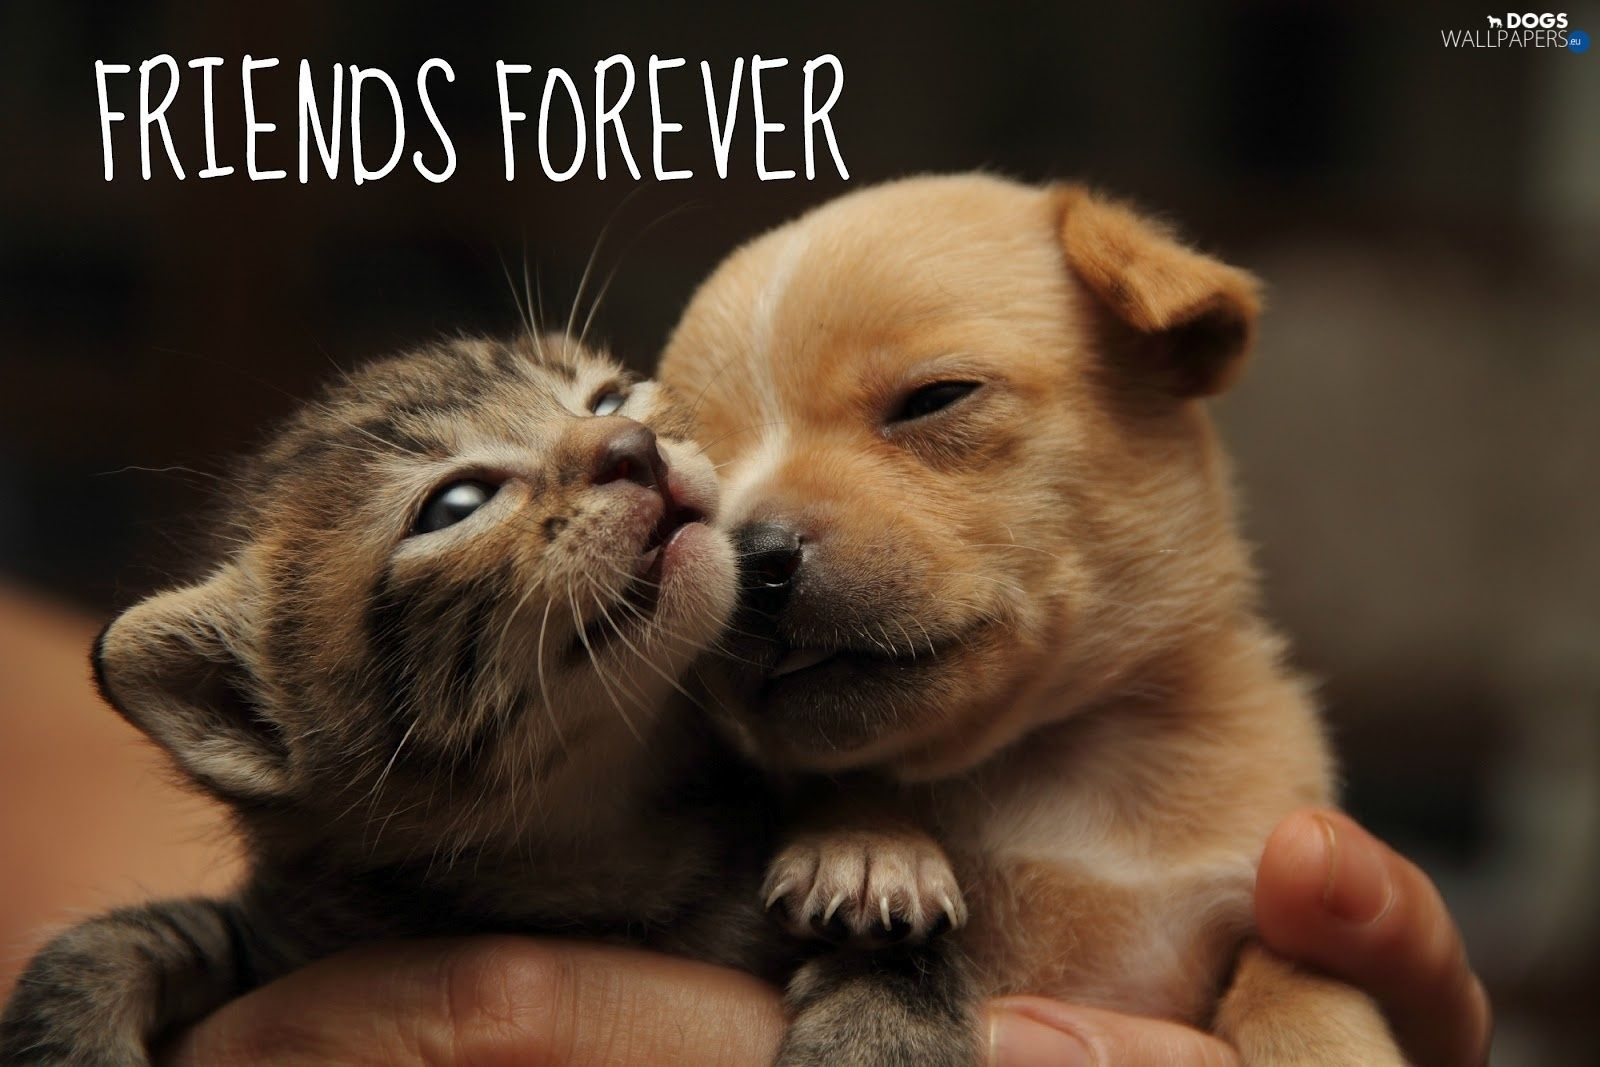 Kitten And Puppy Wallpaper Android Apps On Google Play Kittens And Puppies Puppies Puppy Wallpaper